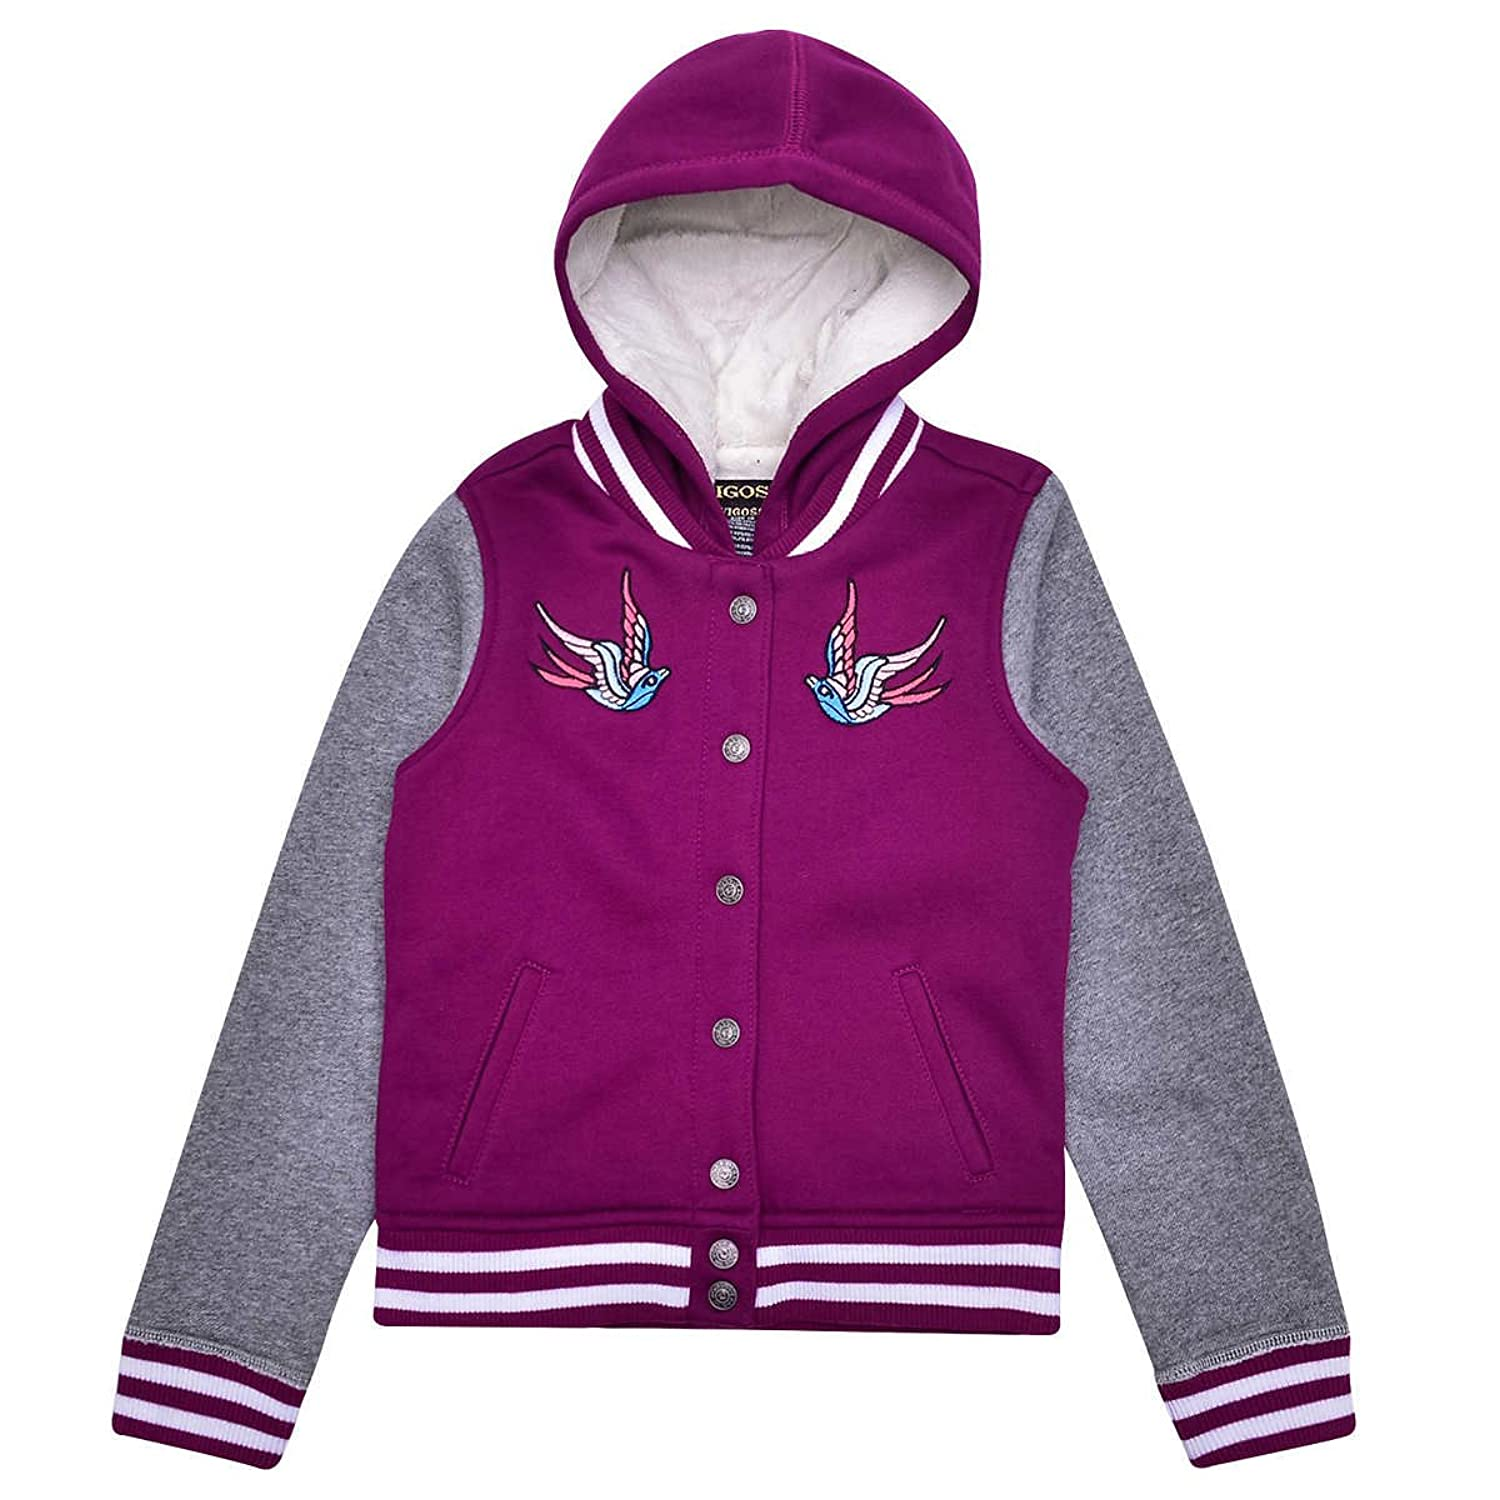 Vigoss Girls' Hooded Jacket (8, Burgundy)